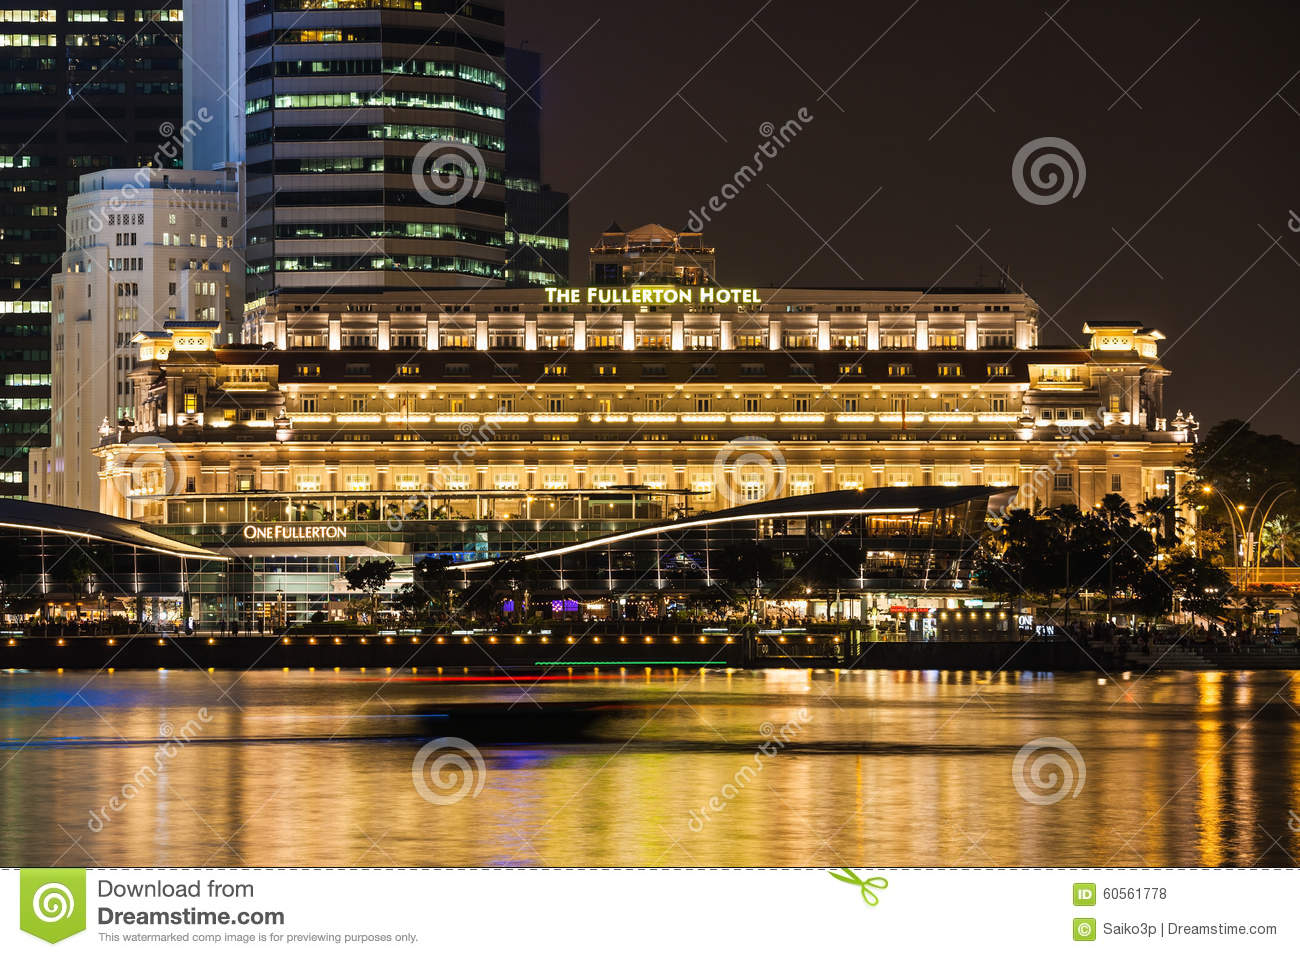 The fullerton hotel editorial stock photo for Five star hotels in singapore